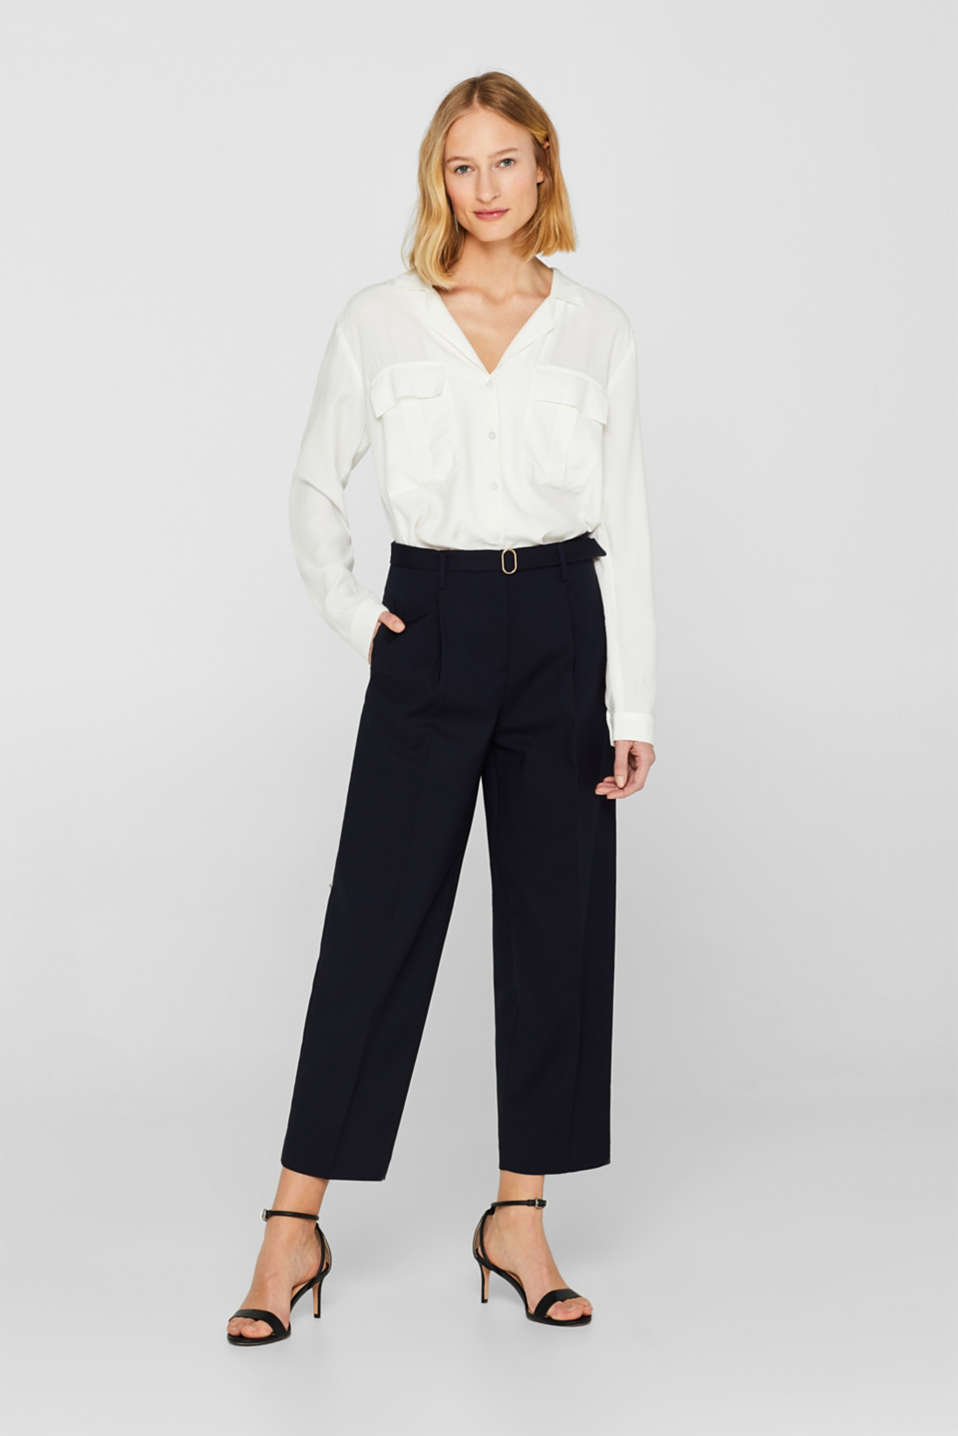 Culottes with a belt and added stretch for comfort